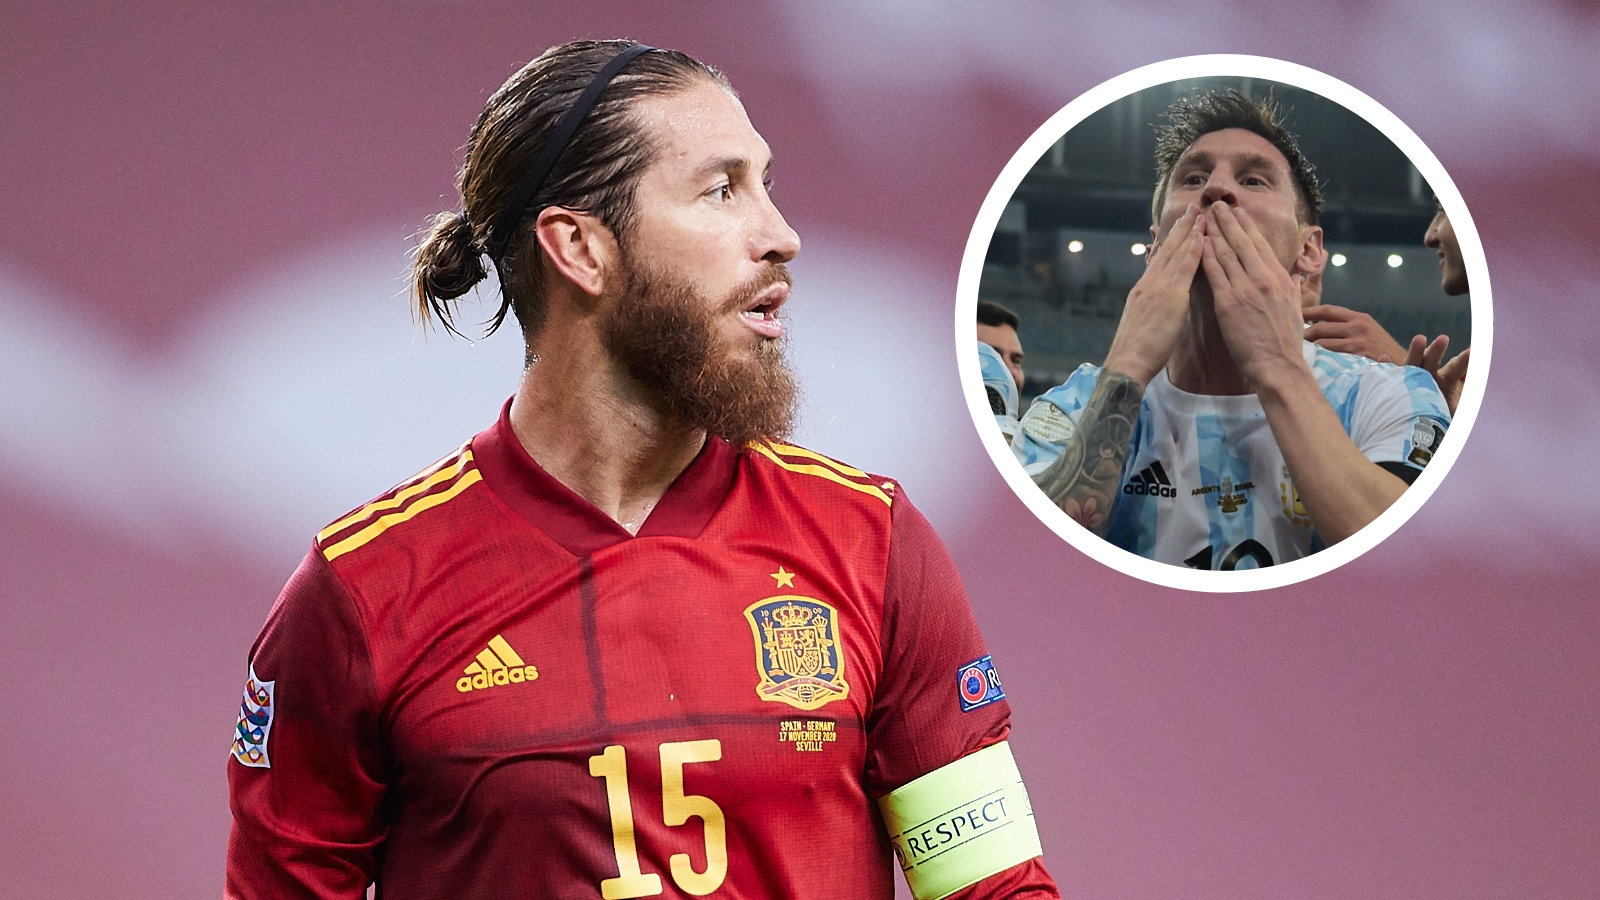 'Messi will always have a role in my team' - Ramos a big fan of Barcelona star despite ties to Real Madrid